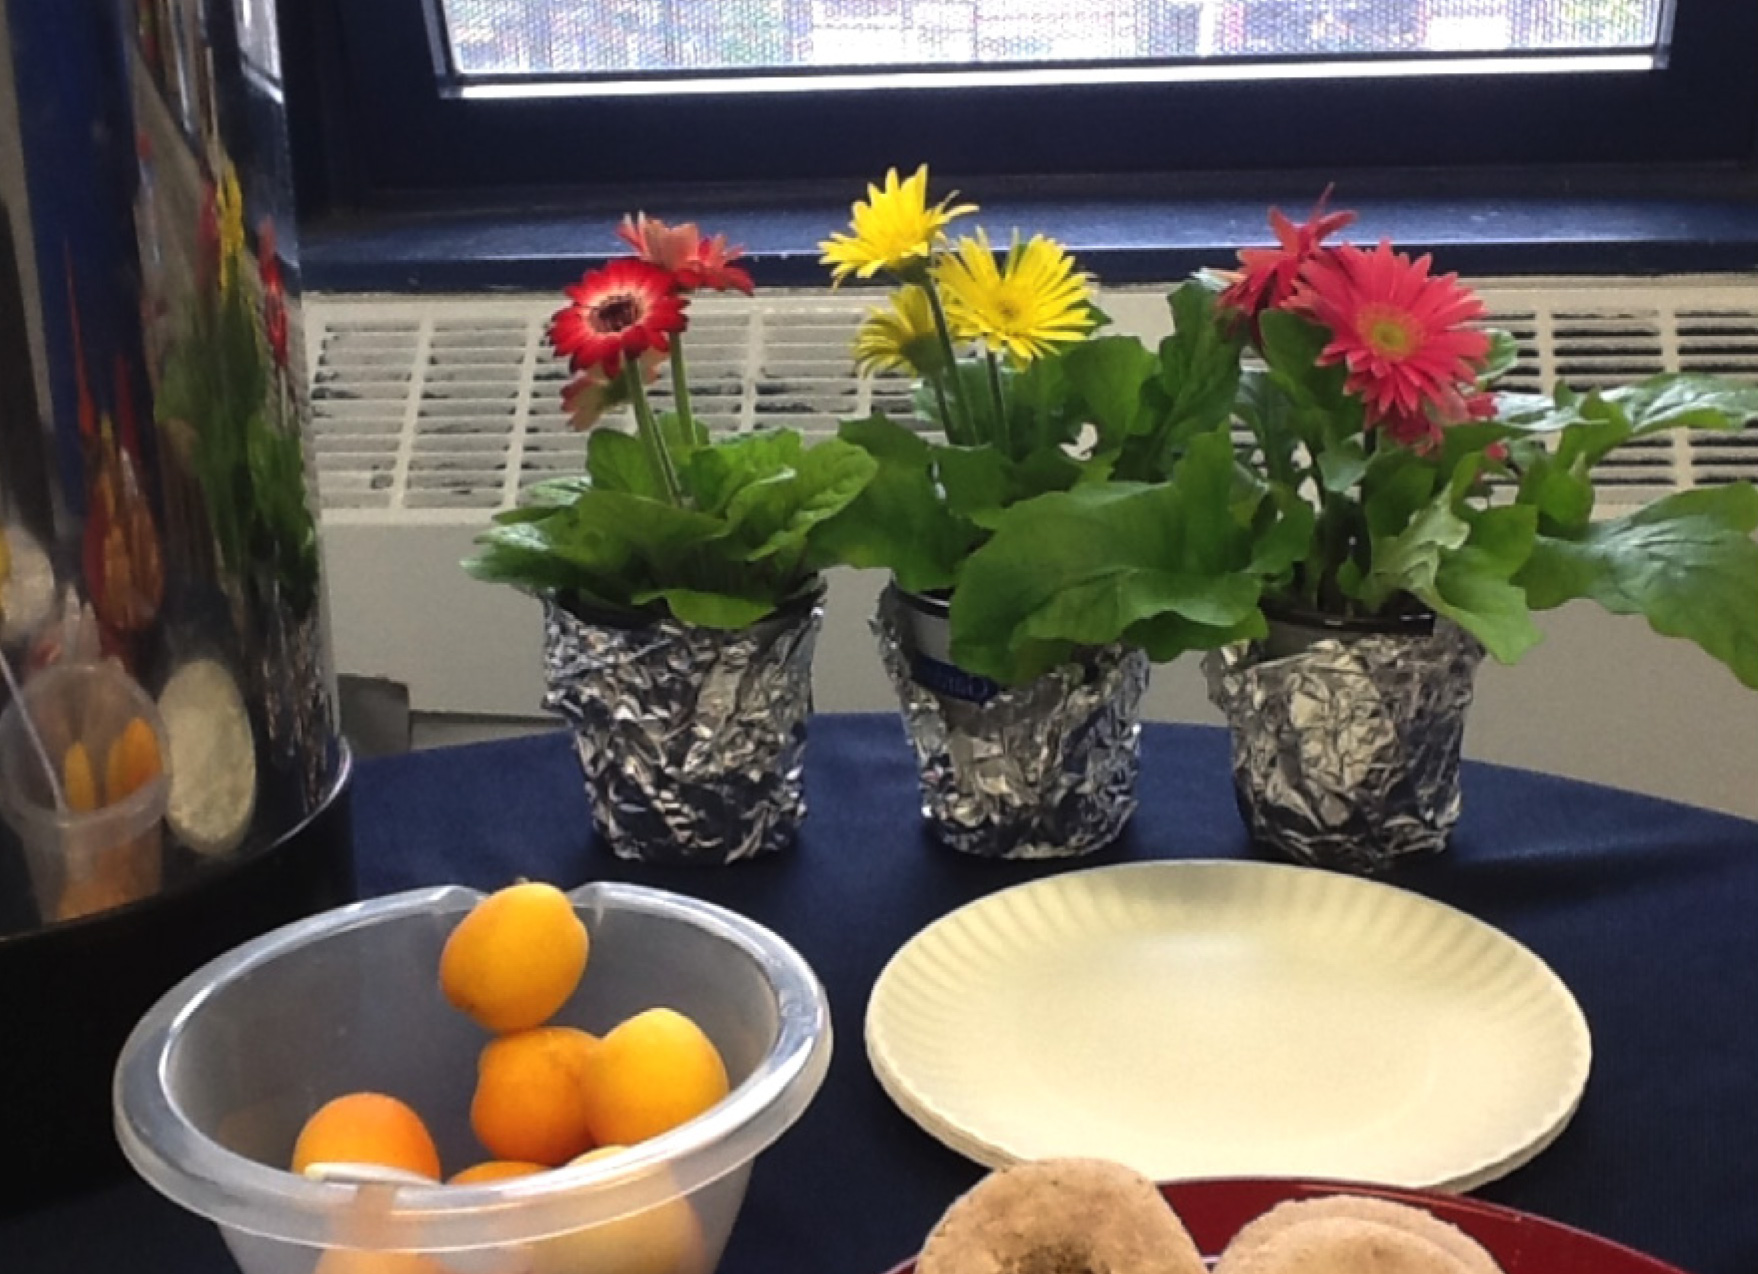 Coordinator to Program Director: I notice that you set up the table with flowers and snacks for today's staff meeting. This is important because it helps teachers feel respected which in turn helps quiet the static and allows people to focus on the topics of today's meeting.